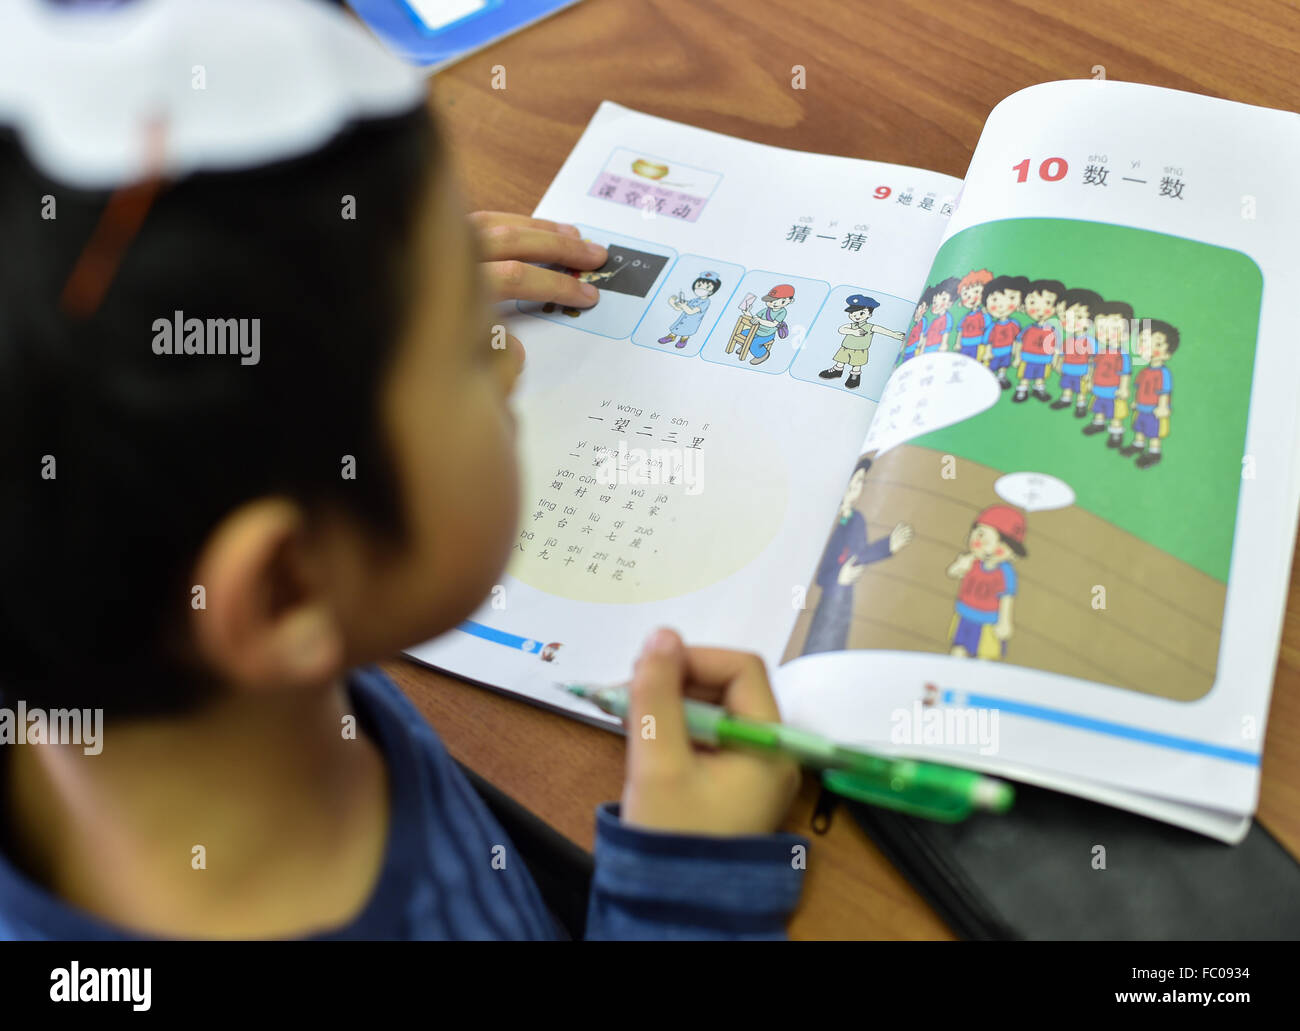 Oberursel, Germany. 22nd Nov, 2015. Annette Feil looks at a school book on the entry-level course at the International - Stock Image